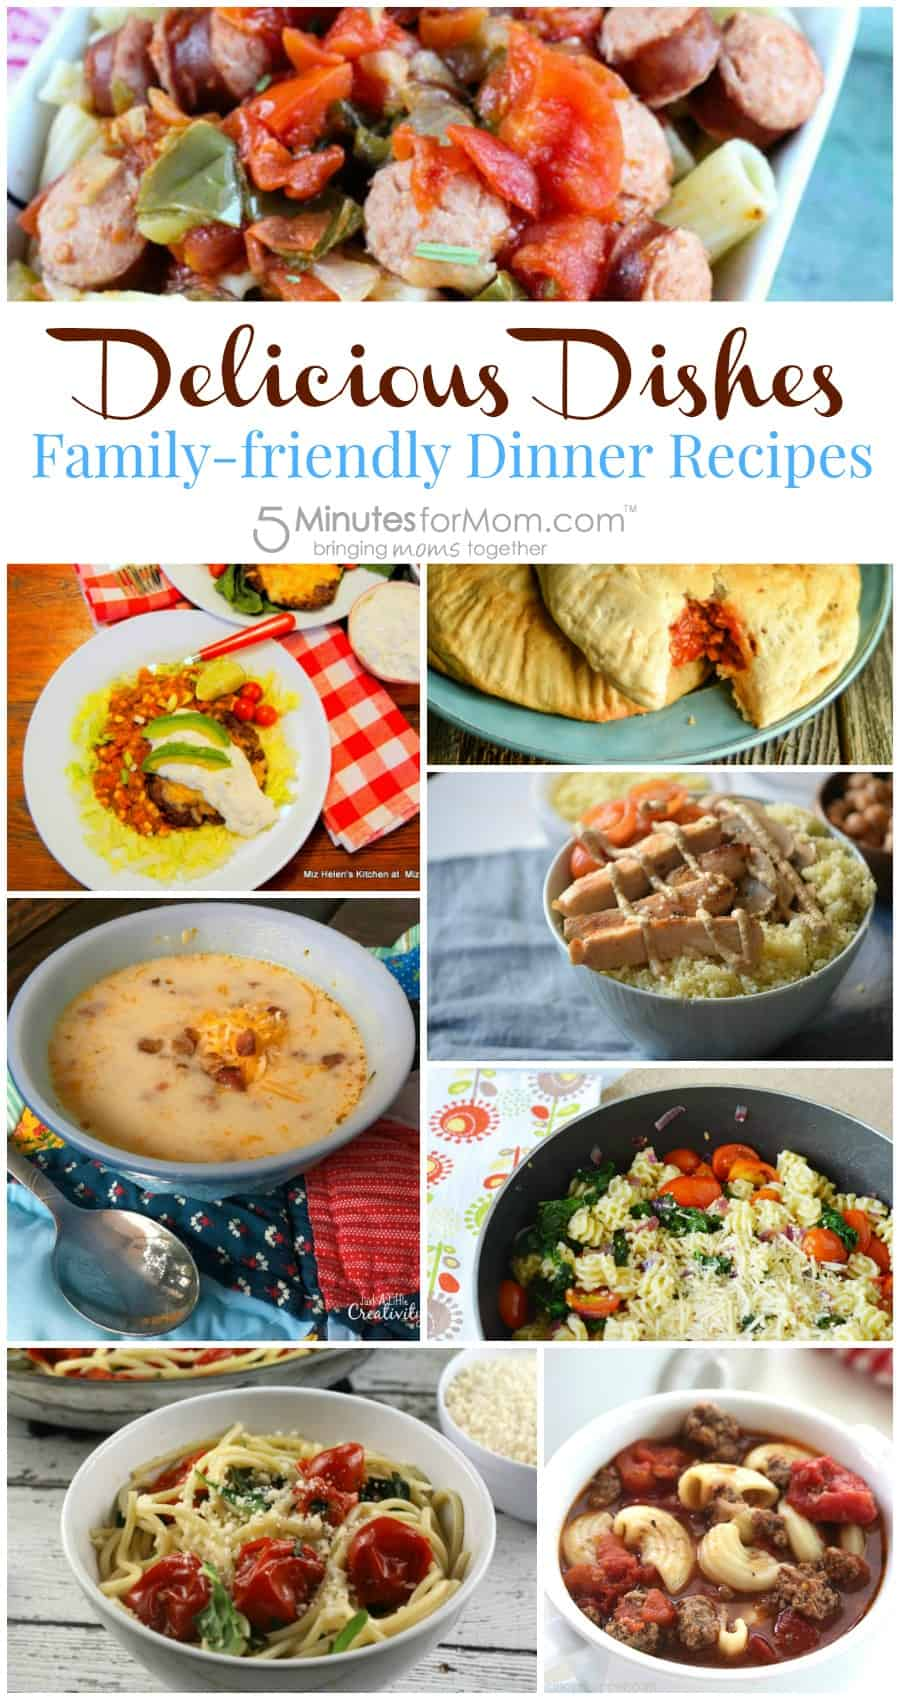 Delicious Dishes - Family-friendly Dinner Recipes